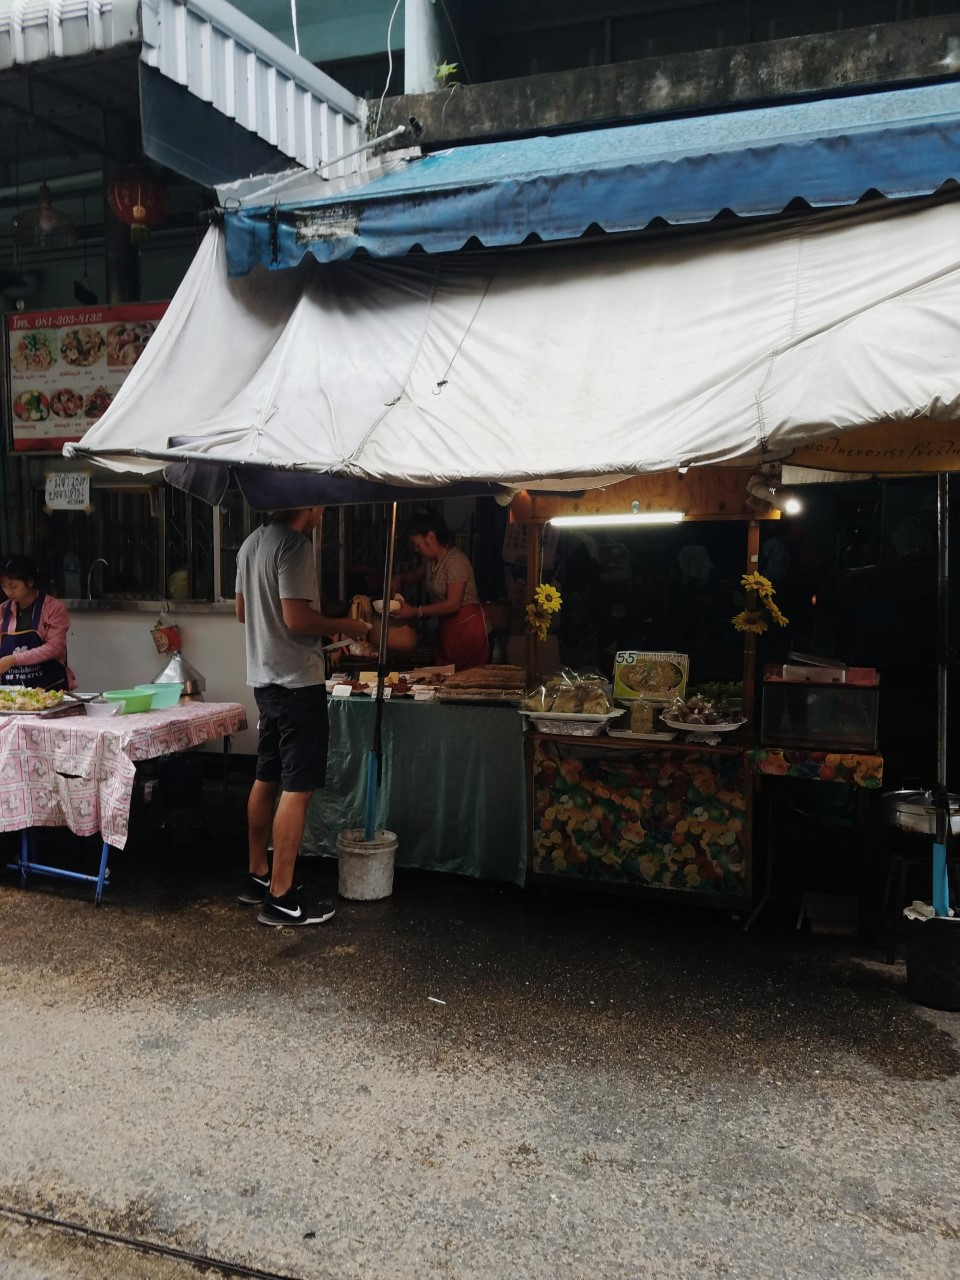 Food vendors on the street